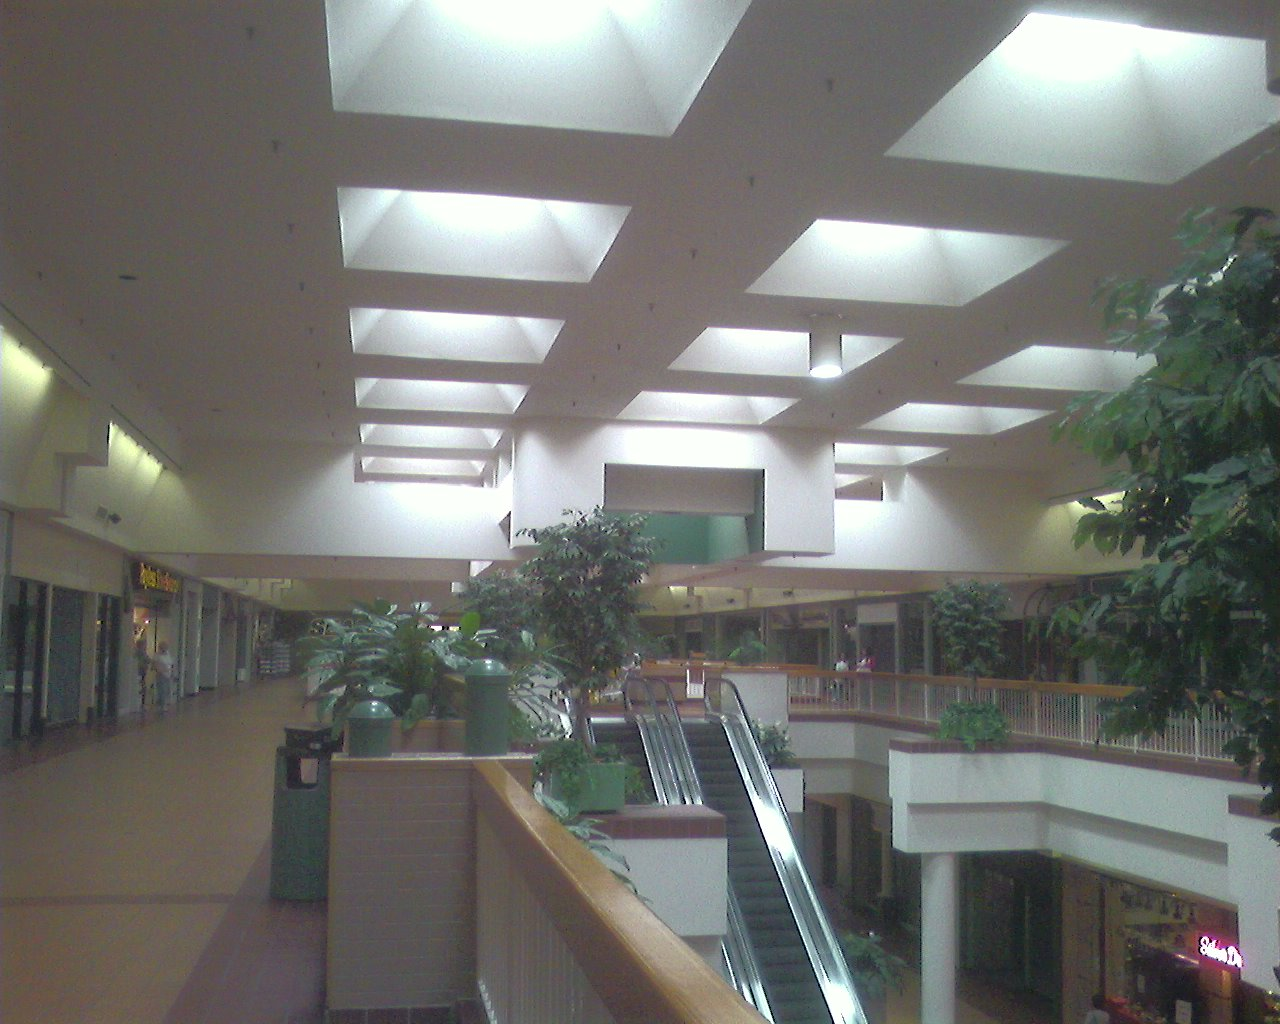 Rhode Island Mall is an outdoor power center under redevelopment in the building of a former two-story, enclosed shopping mall in Warwick, Rhode Island. The property opened as the Midland Mall in October ; for several years, it co-existed with the nearby Warwick Mall that opened in